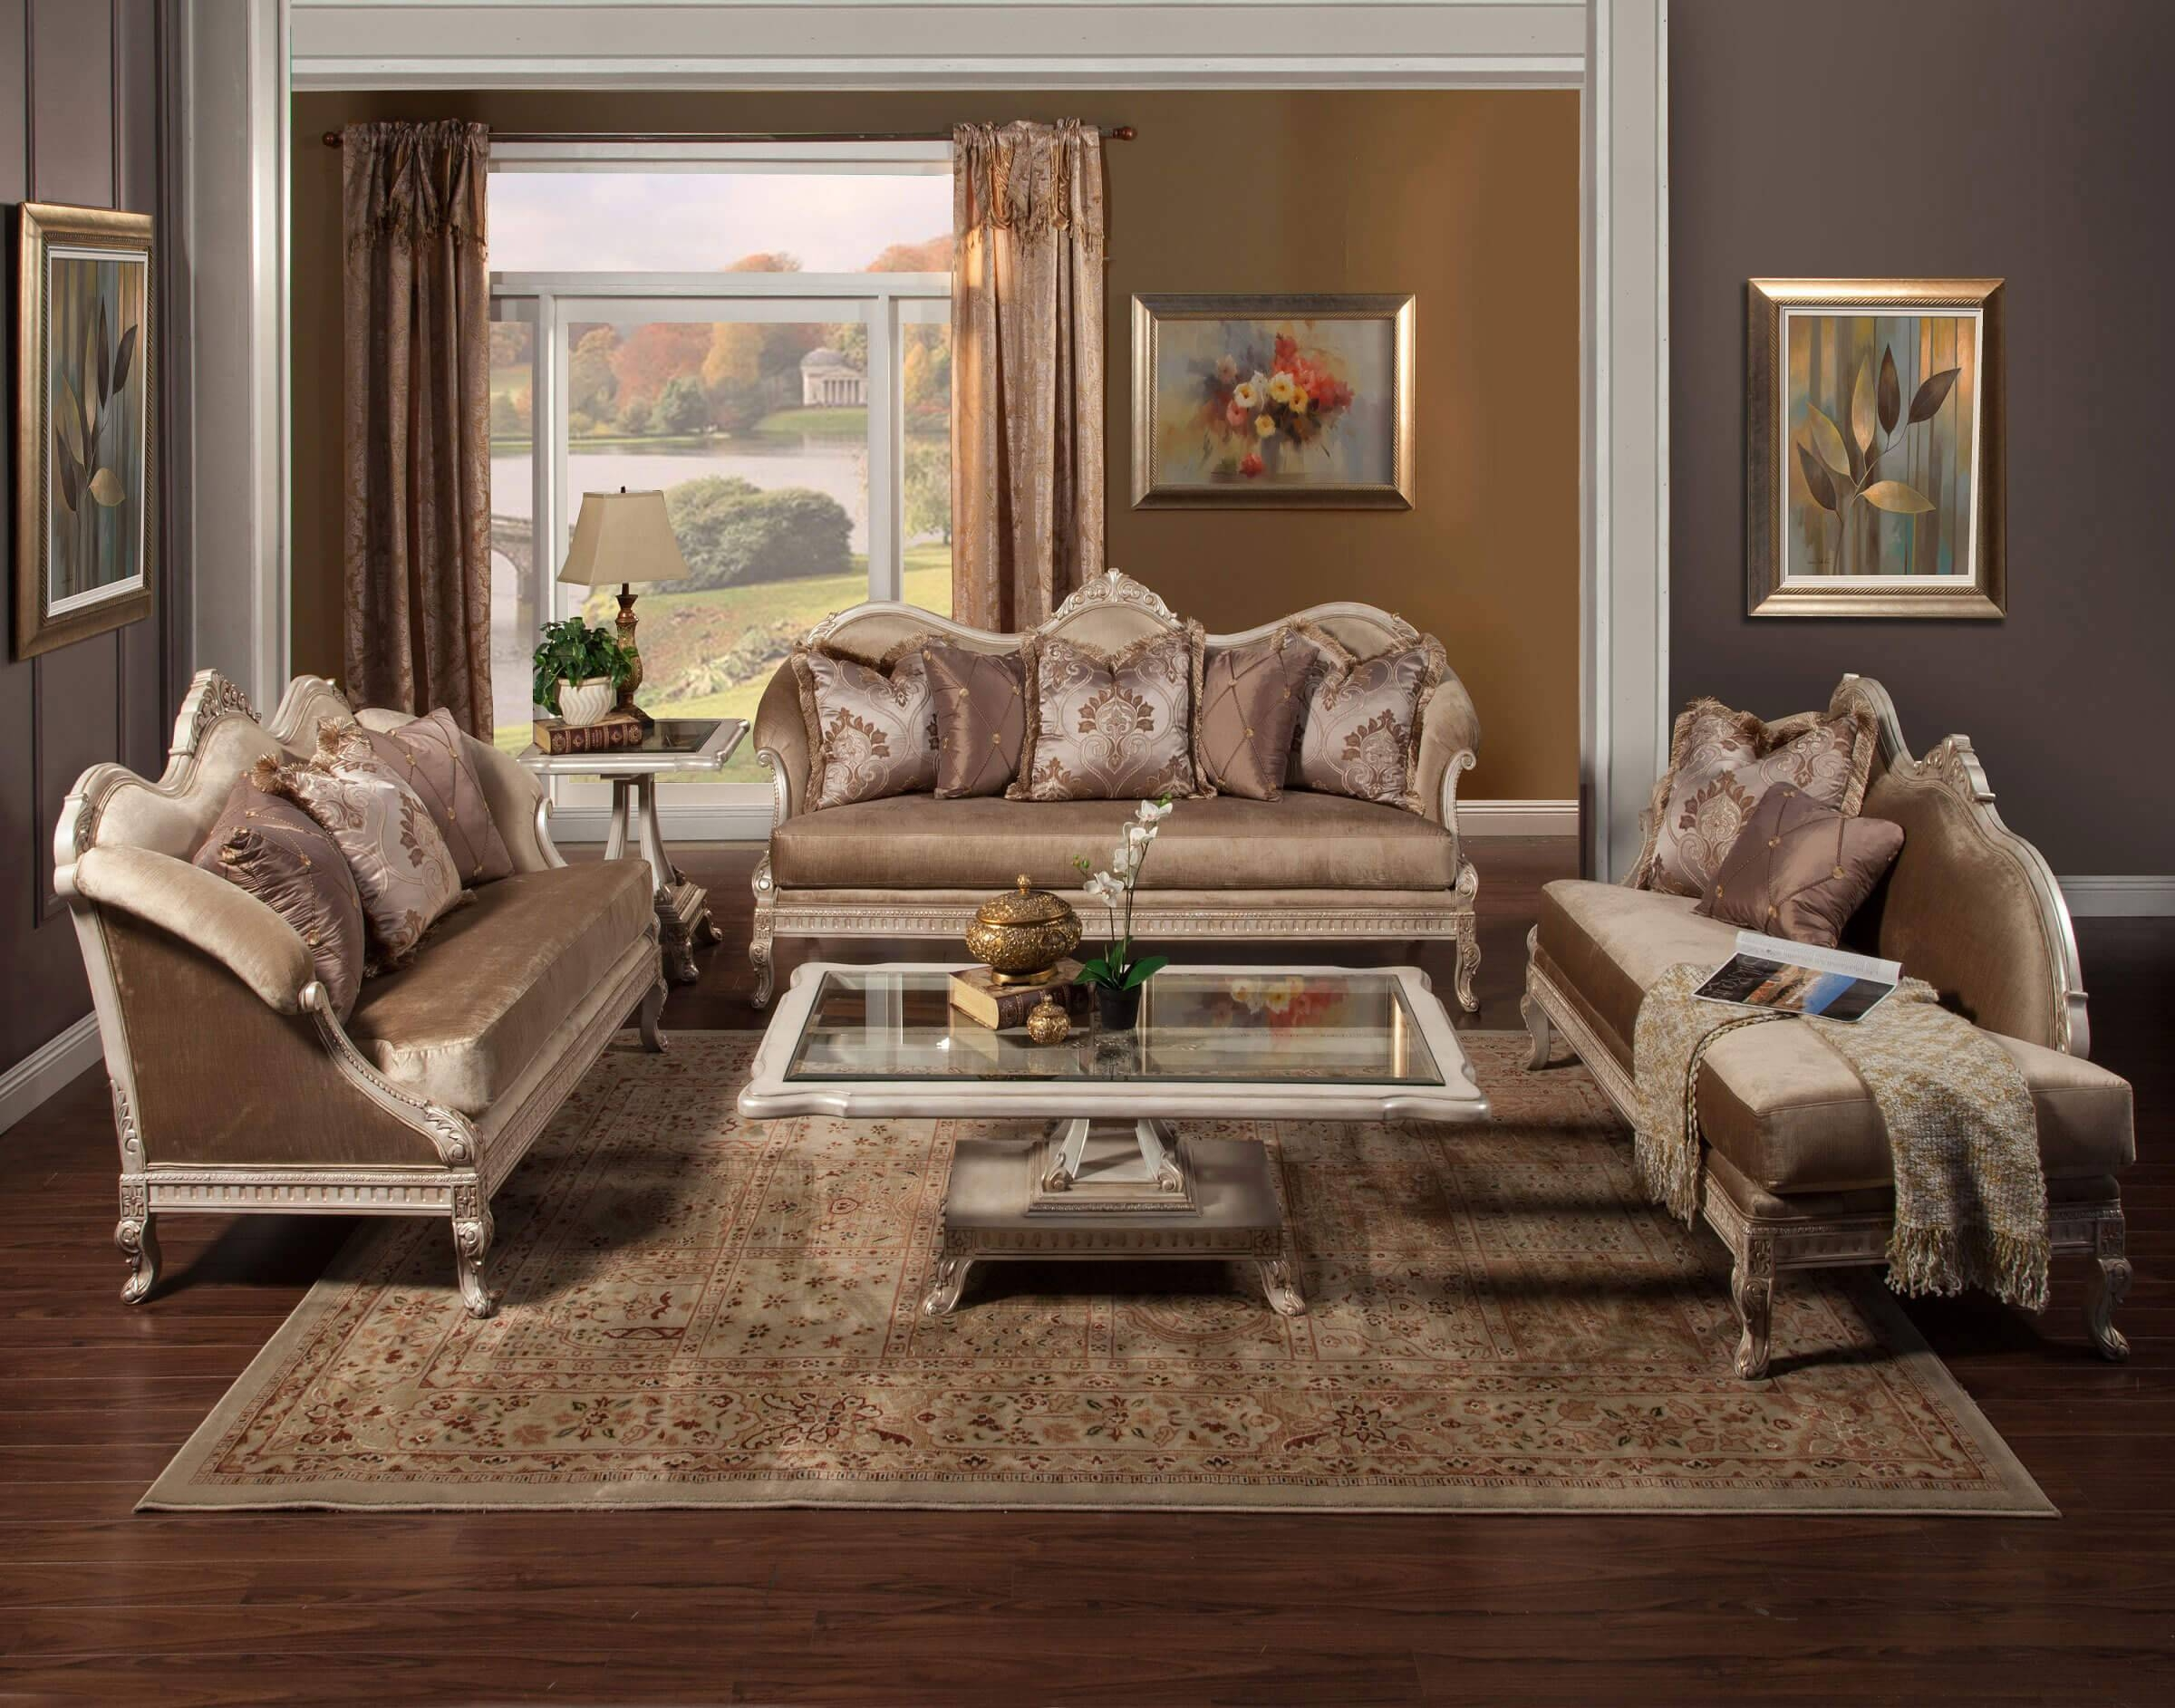 Perla Wood Trim Sofa & Chaise Lounge Set • Usa Furniture Online inside Sofas And Chaises Lounge Sets (Image 12 of 15)